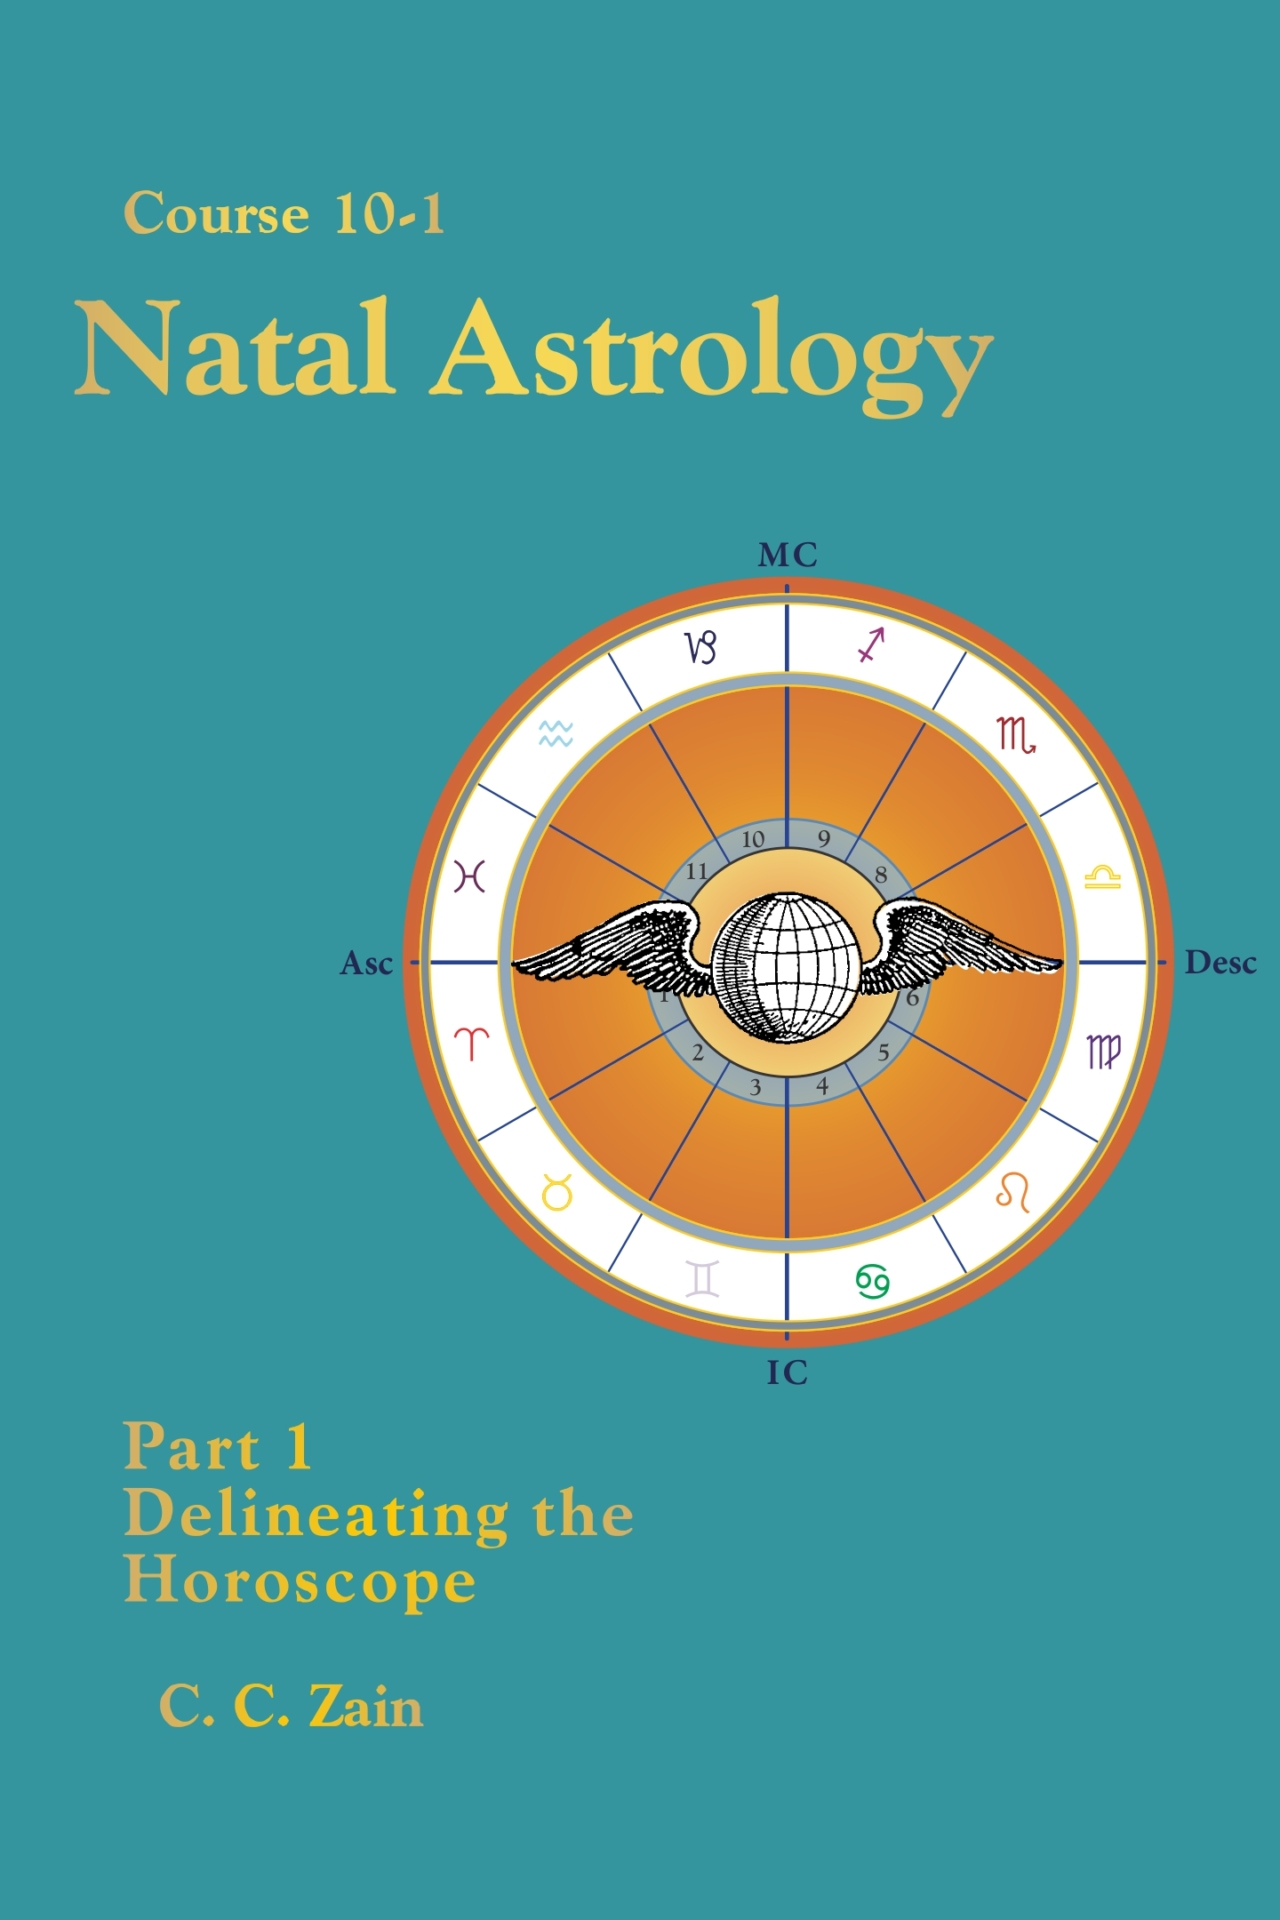 https://study.academyofhermeticarts.org/wp-content/uploads/2020/04/10-1_Delineating_the_Horoscope_eBook_Cover-1280x1920.jpg